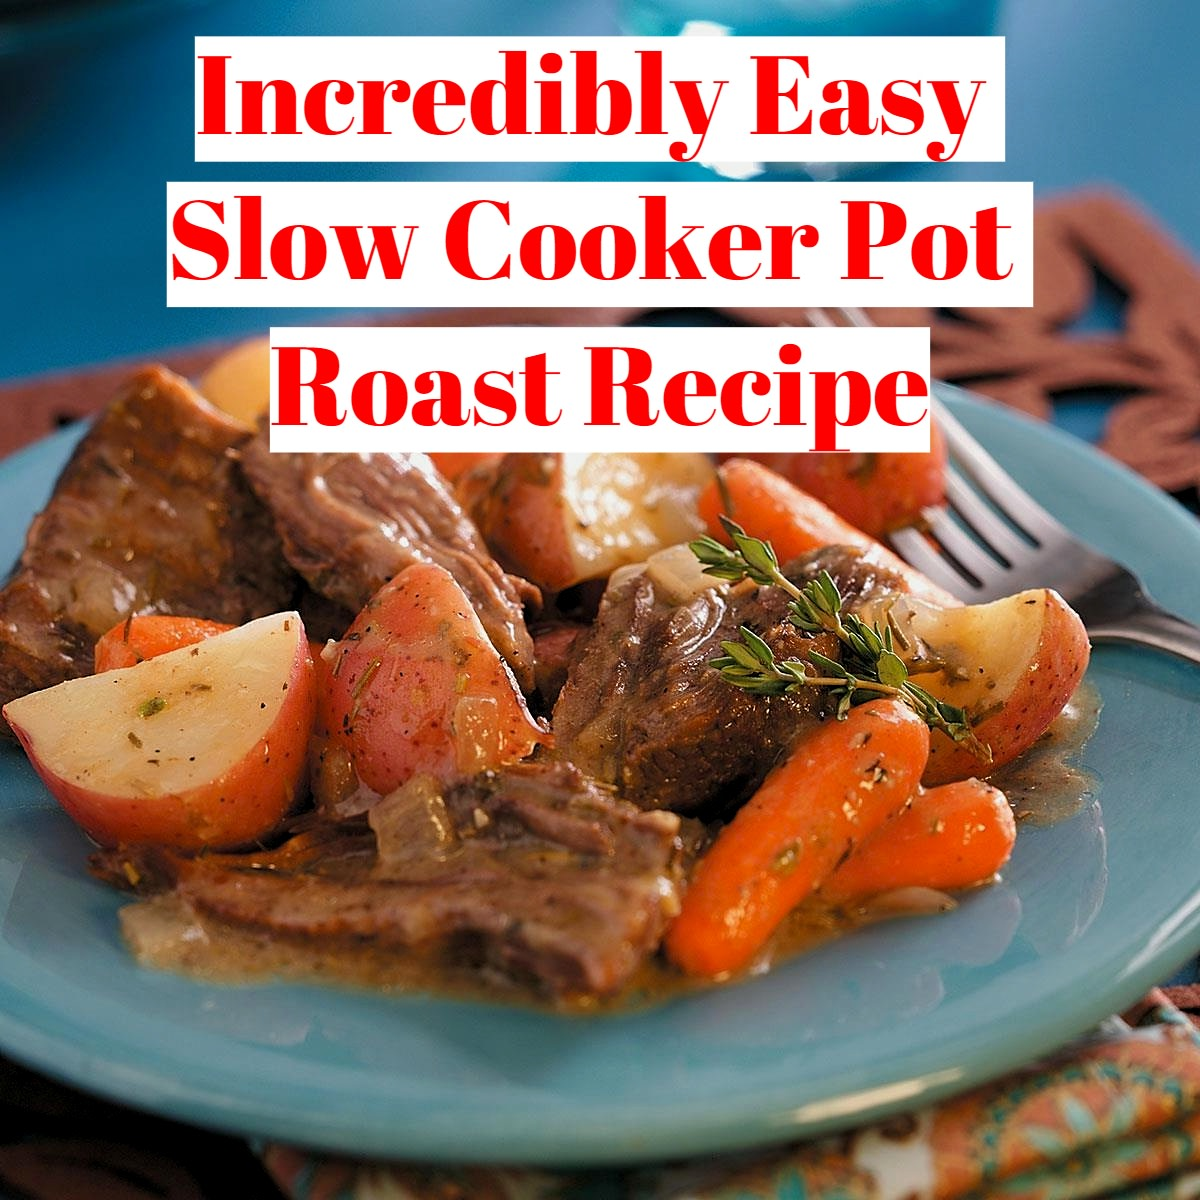 Easy slow cooker pot roast recipe.